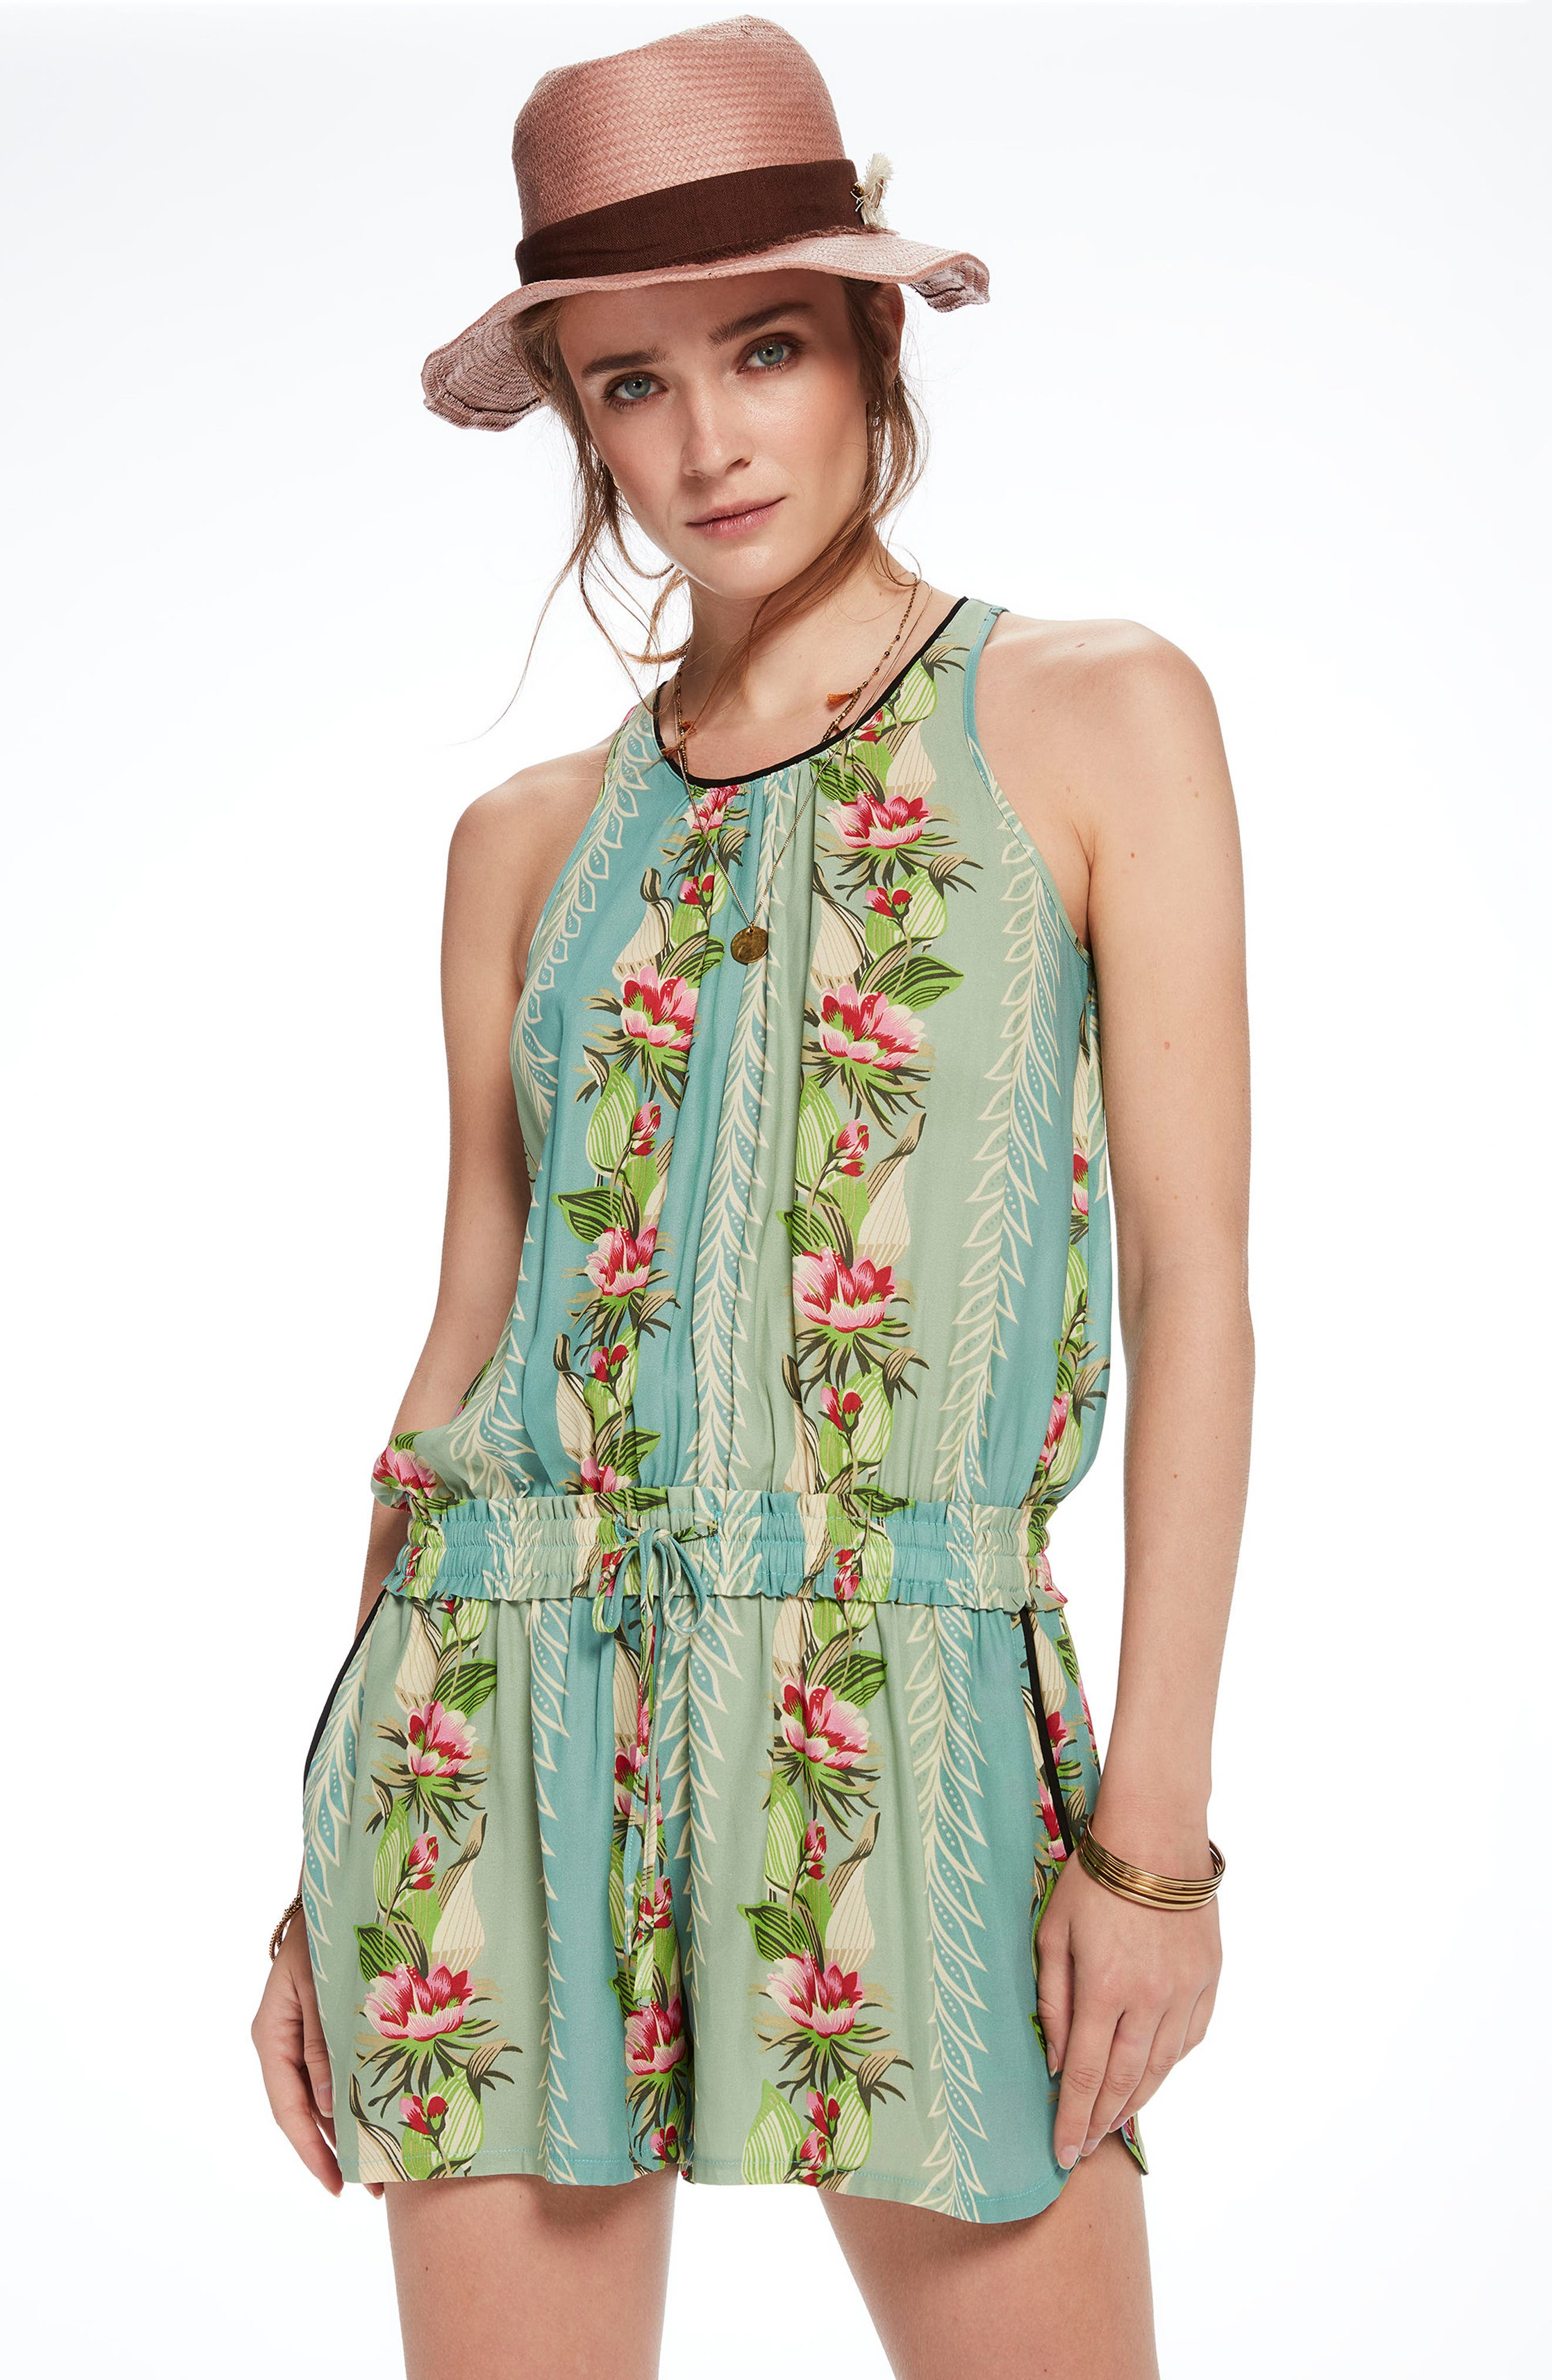 Print All in One Romper,                             Alternate thumbnail 8, color,                             440